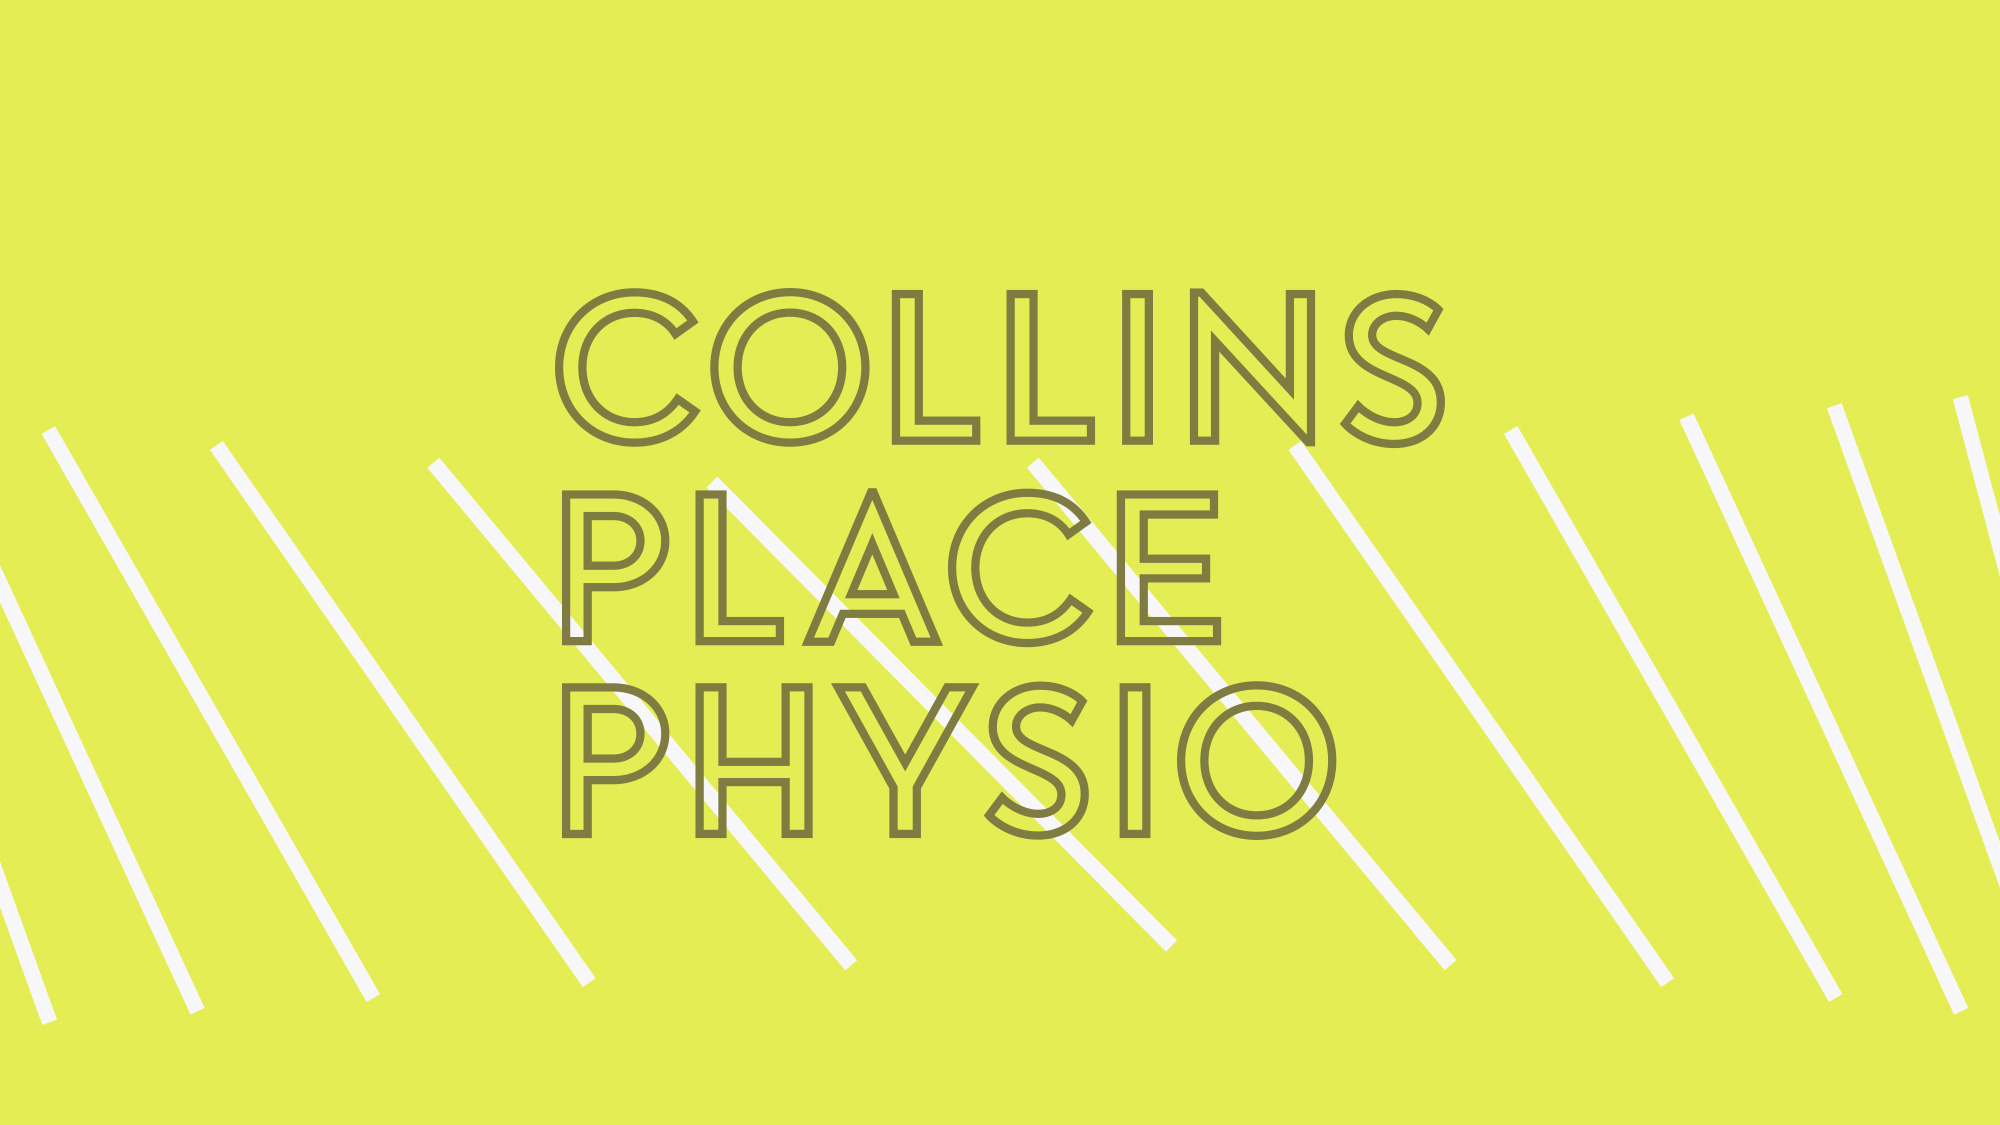 Lines in the Collins Place Physio brandmark